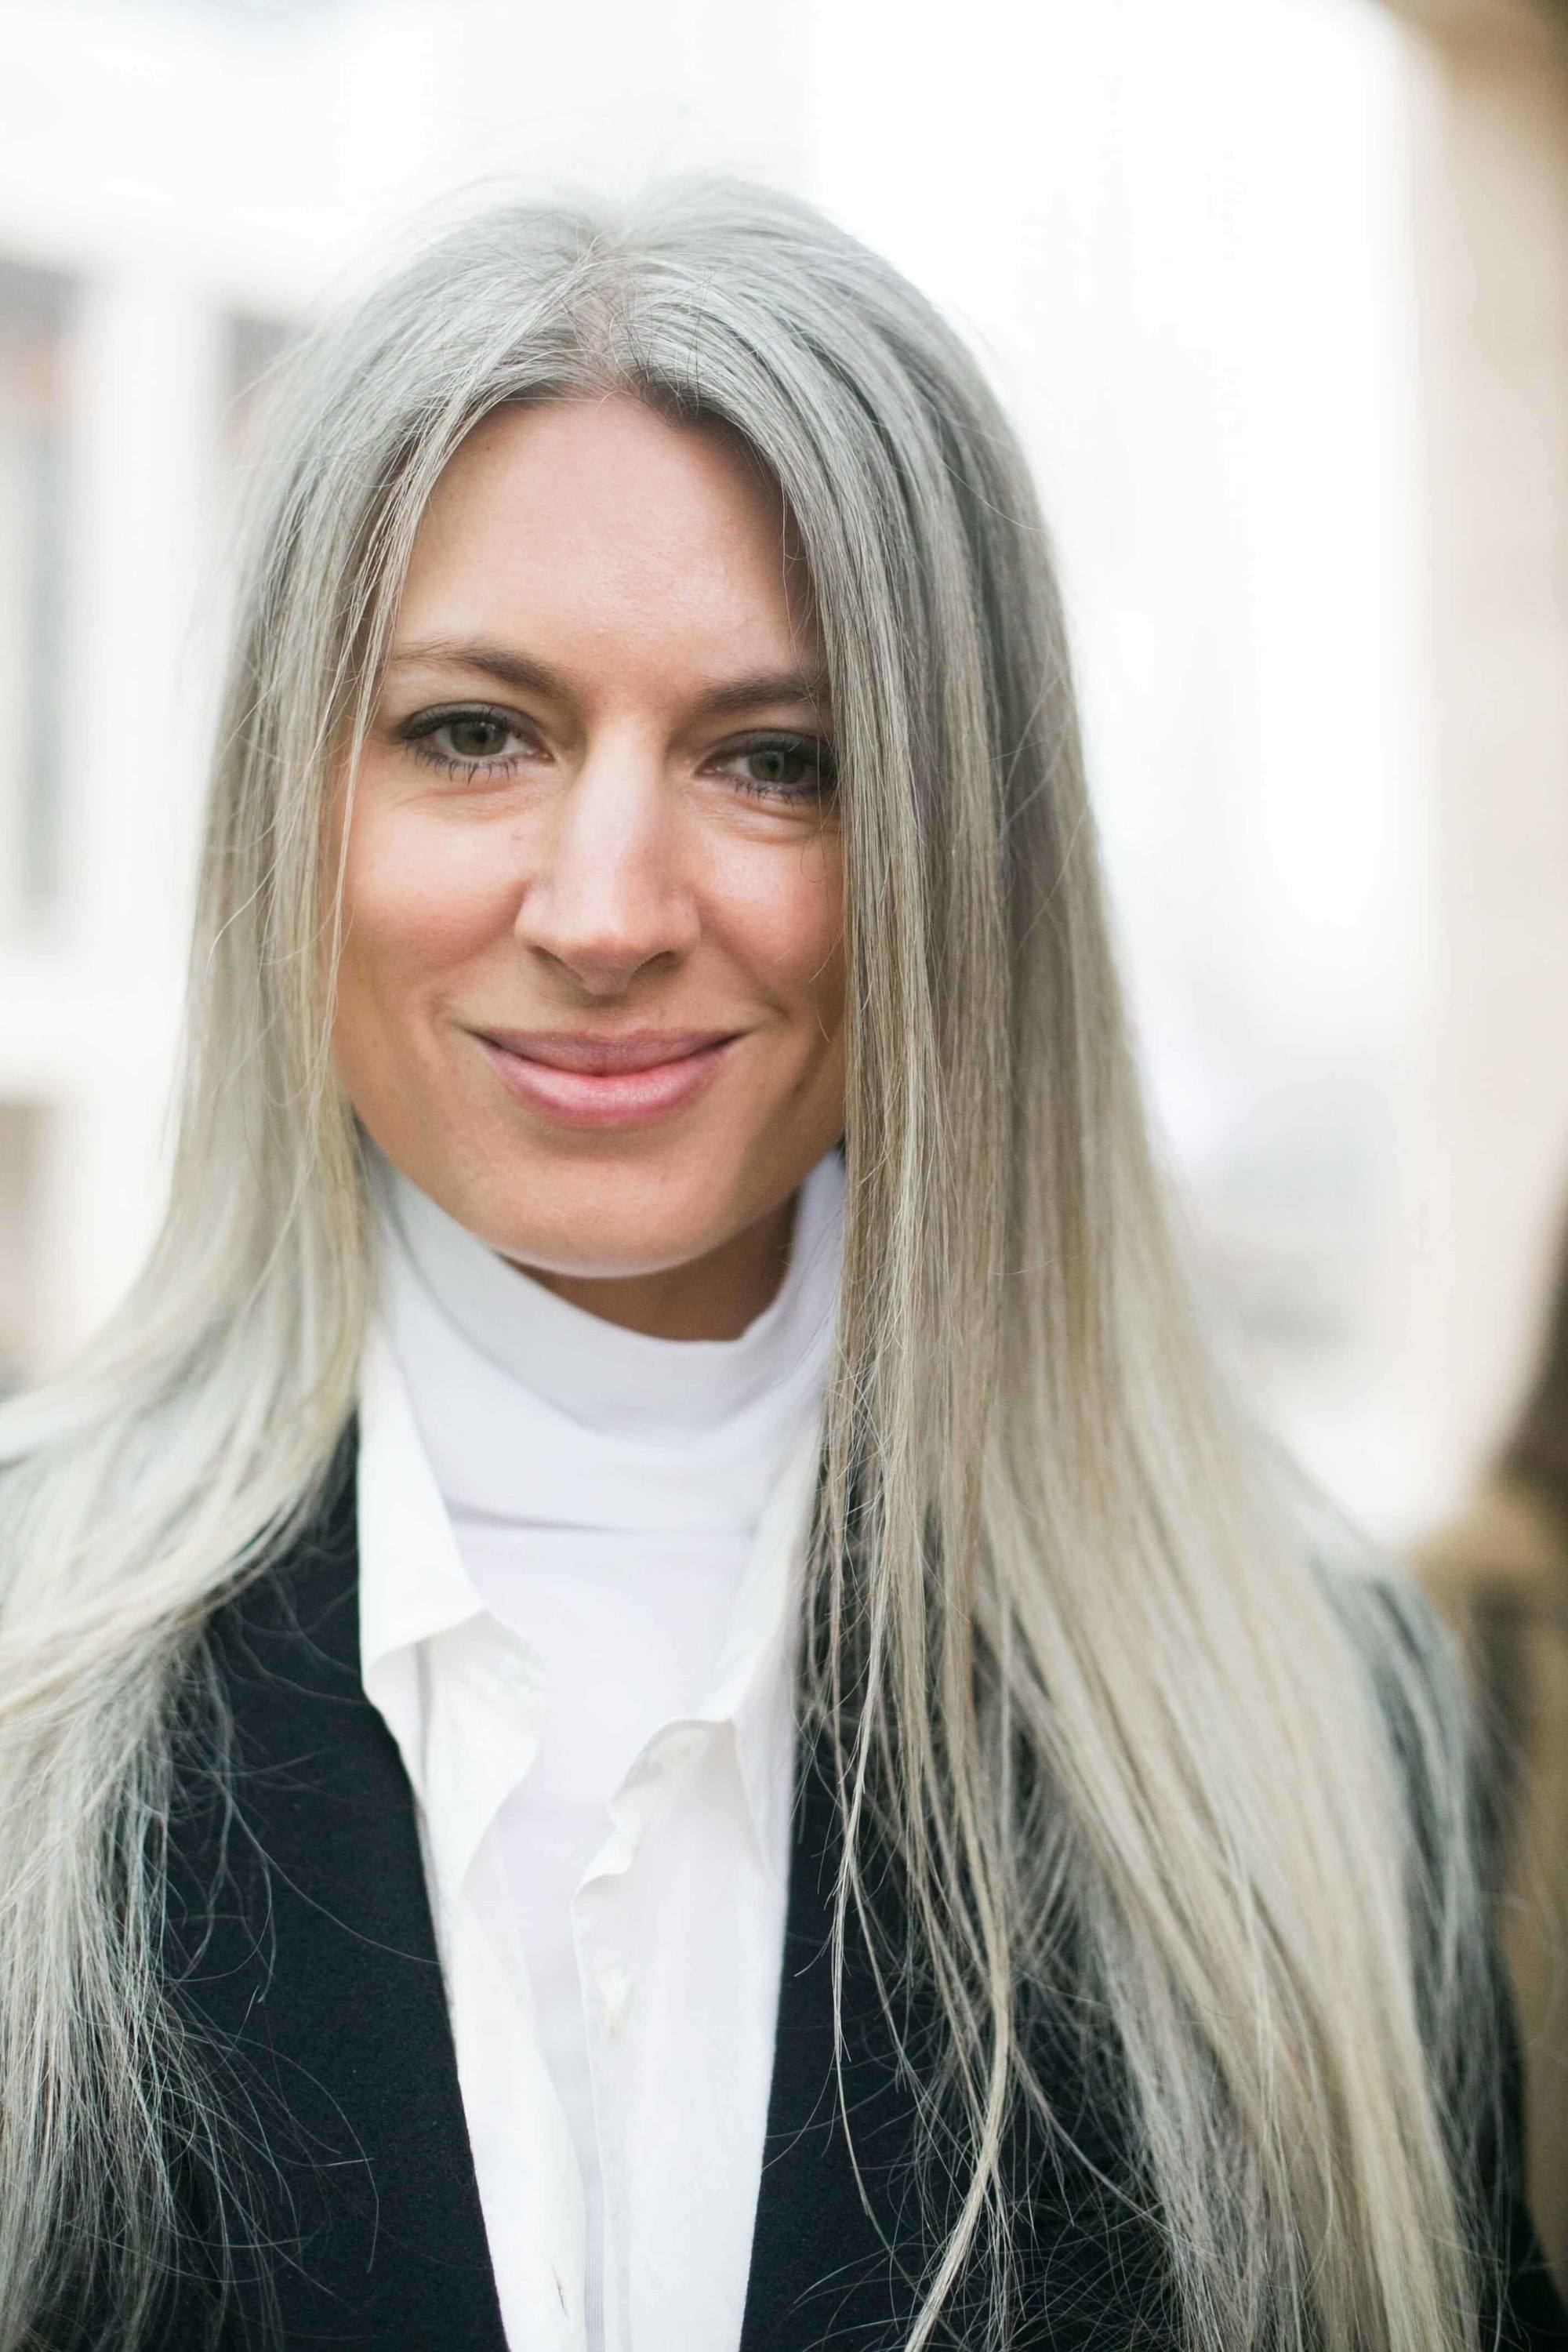 Silver Hair Color 14 Fresh Ways To Wear The Look